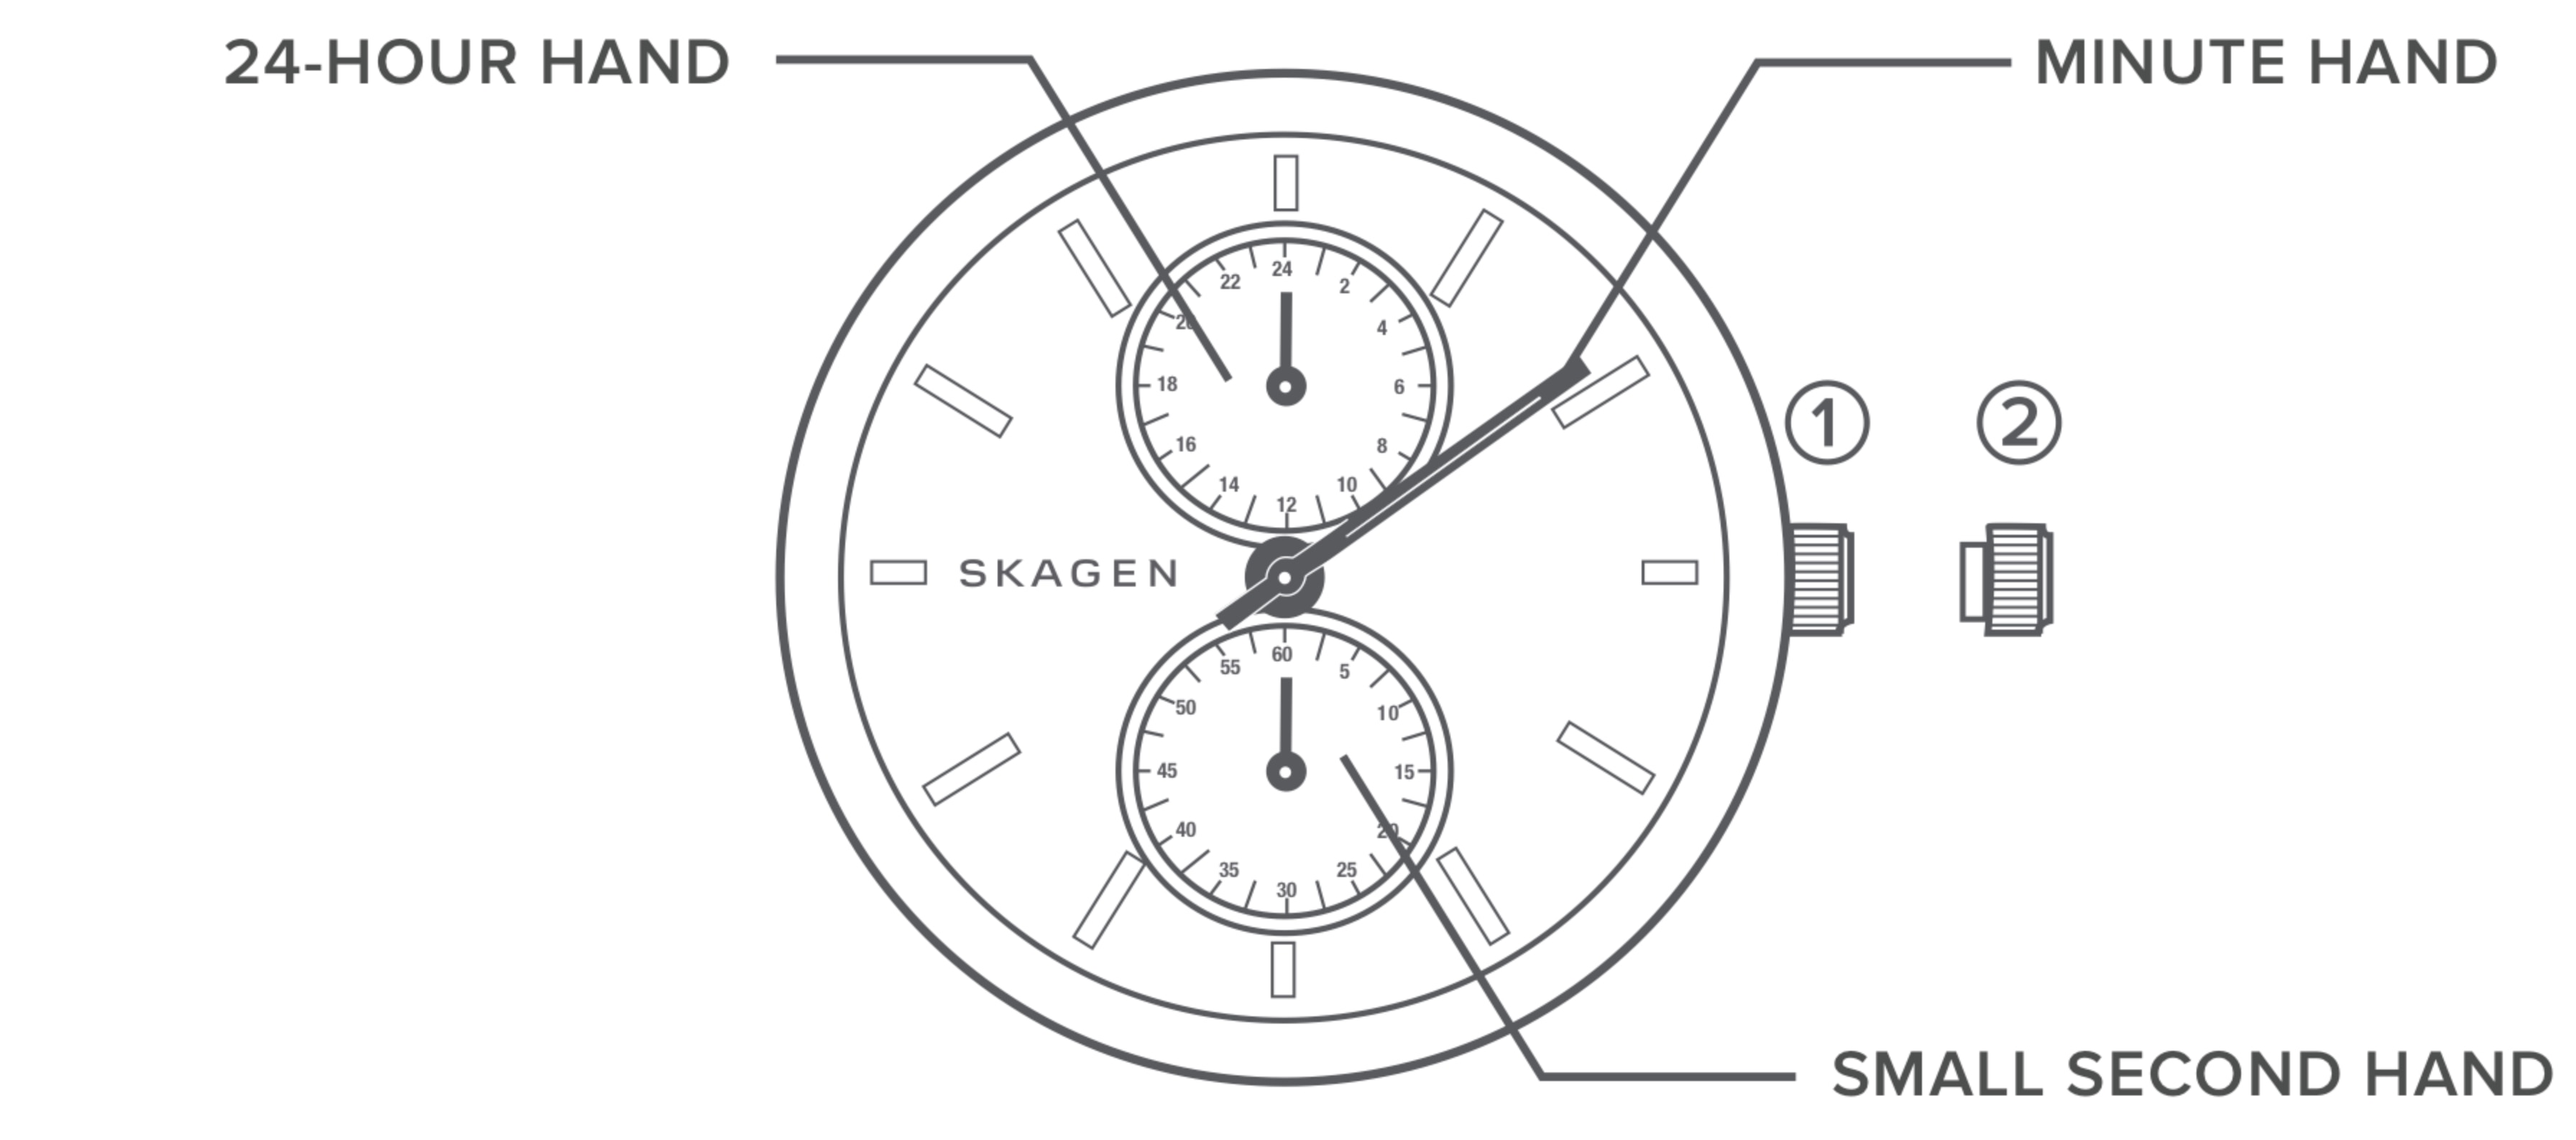 line art of a one hand watch dial, identifying the 24-hour hand, the minute hand and the small second hand.